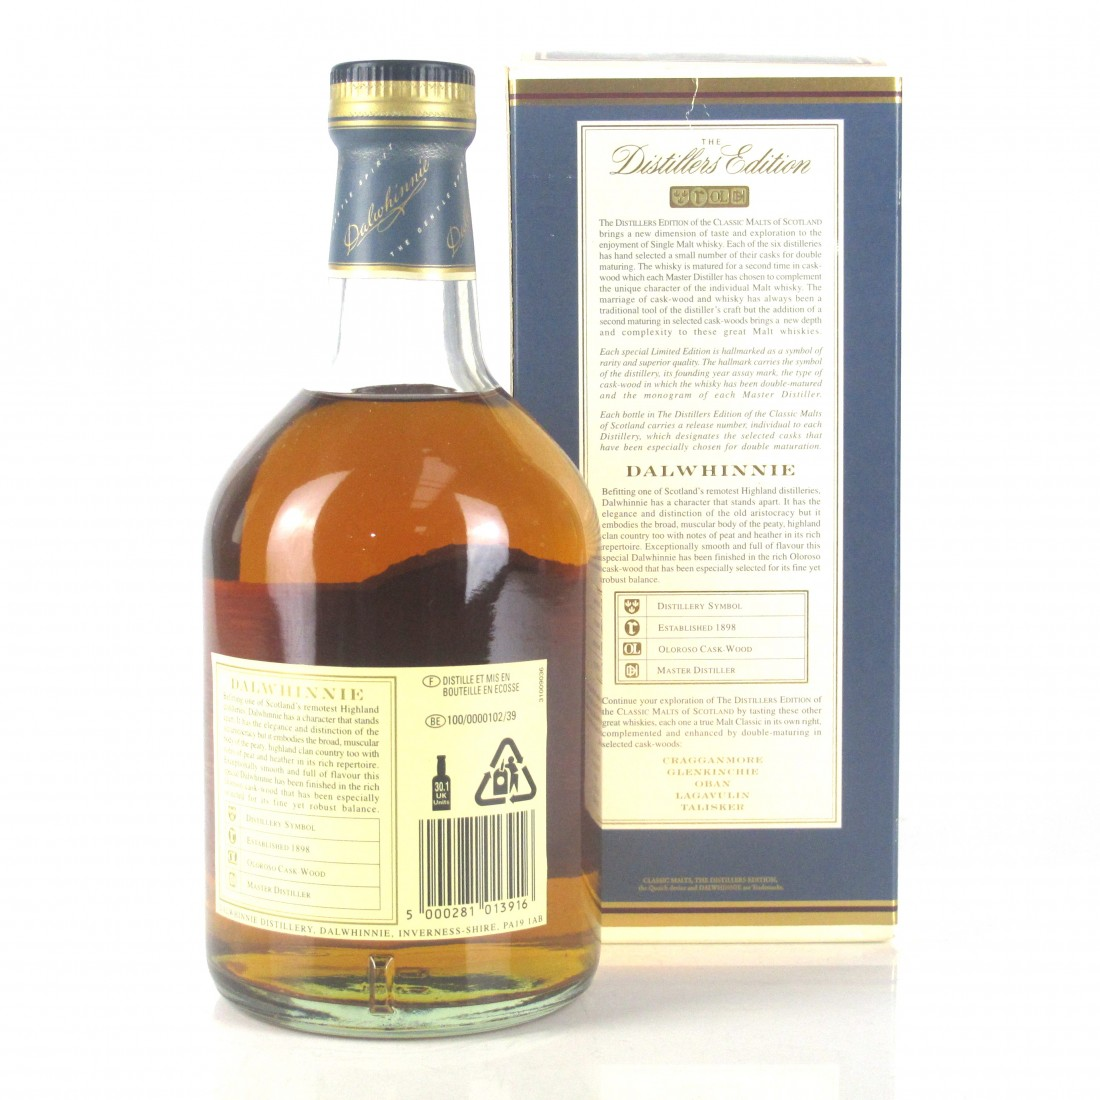 Dalwhinnie 1989 Distillers Edition